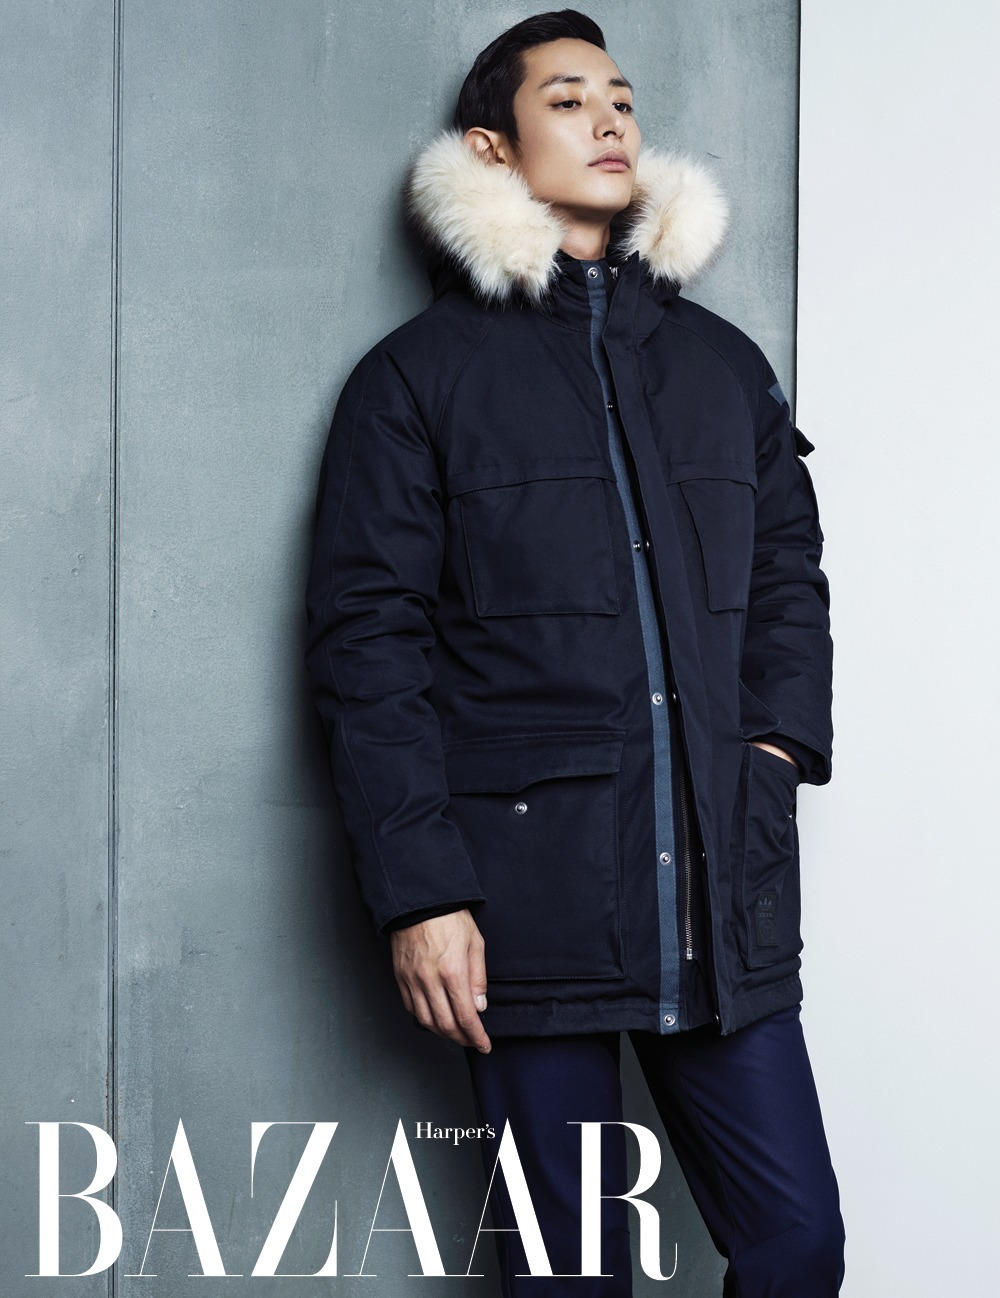 Lee Soo Hyuk for Harpers Bazzar